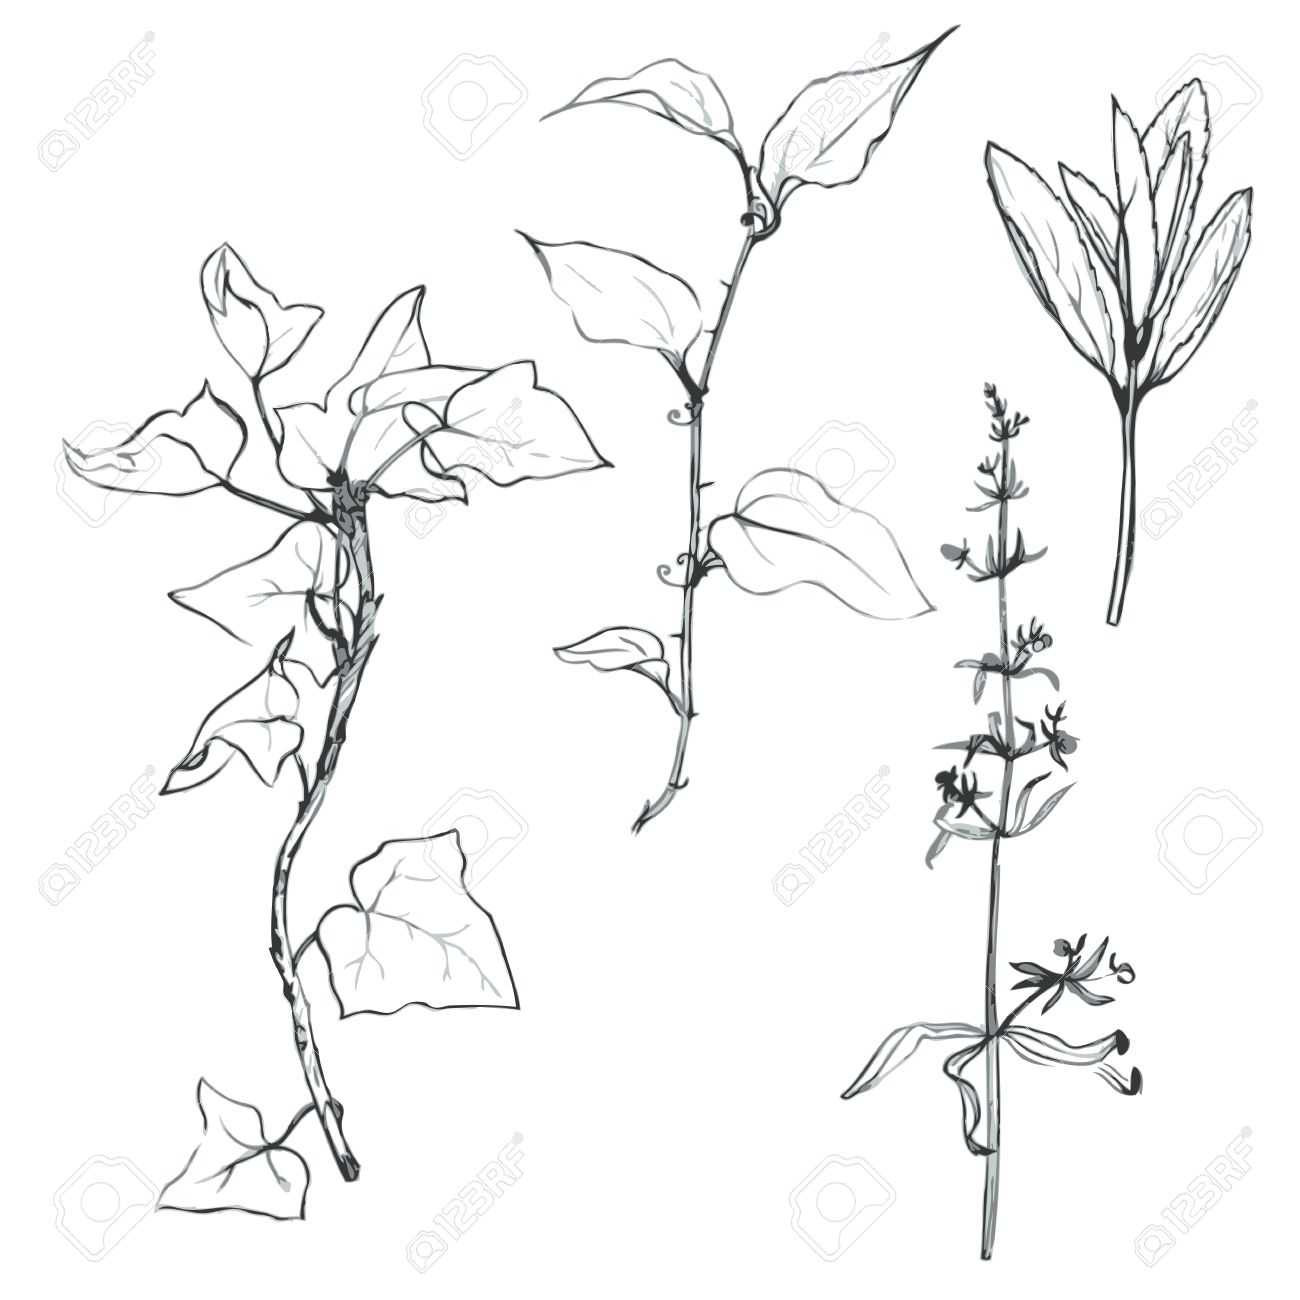 1300x1300 Set Of Pencil Drawing Herbs And Leaves, Painted Graphite Pencil